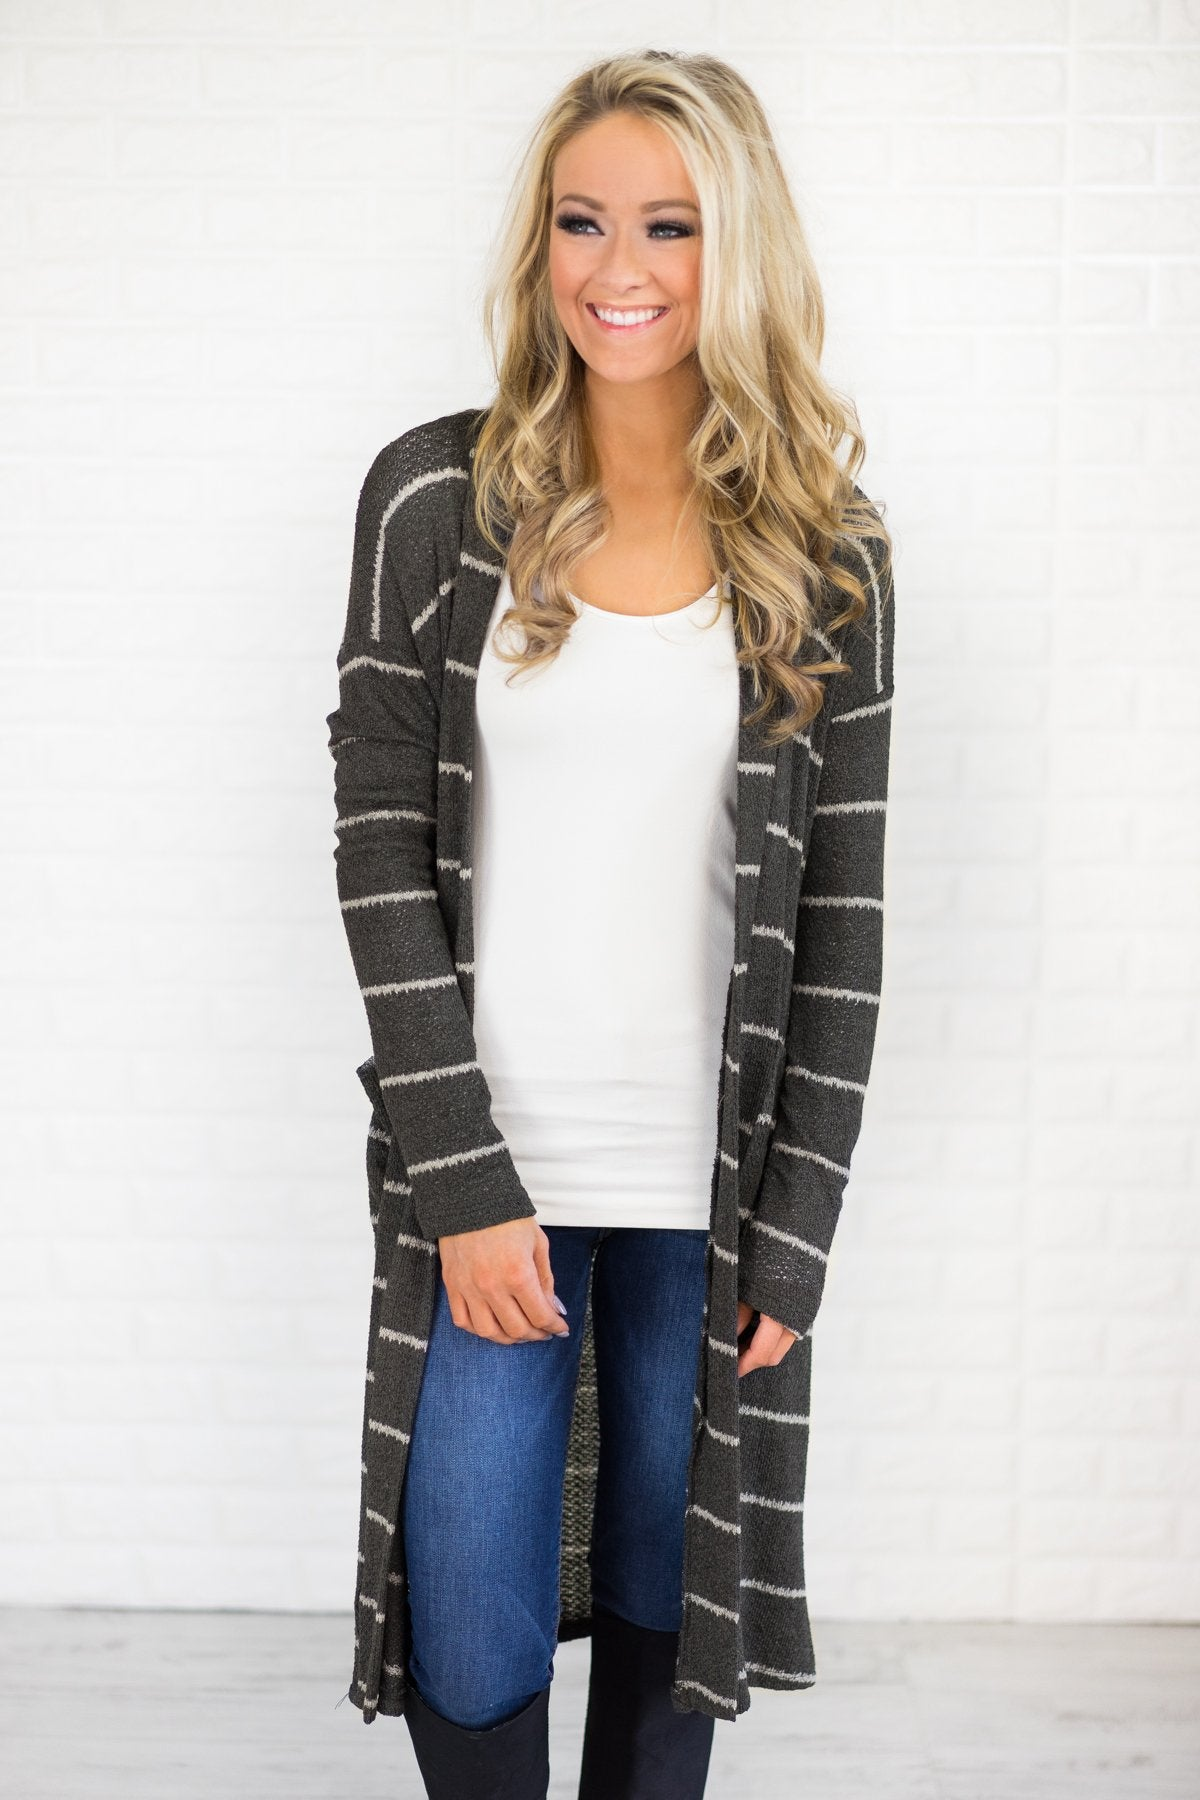 Striped Open Front Cardigan Duster: This knee-grazing duster cardigan boasts a chic striped pattern and offers incredible softness. Long sleeve style serves as .